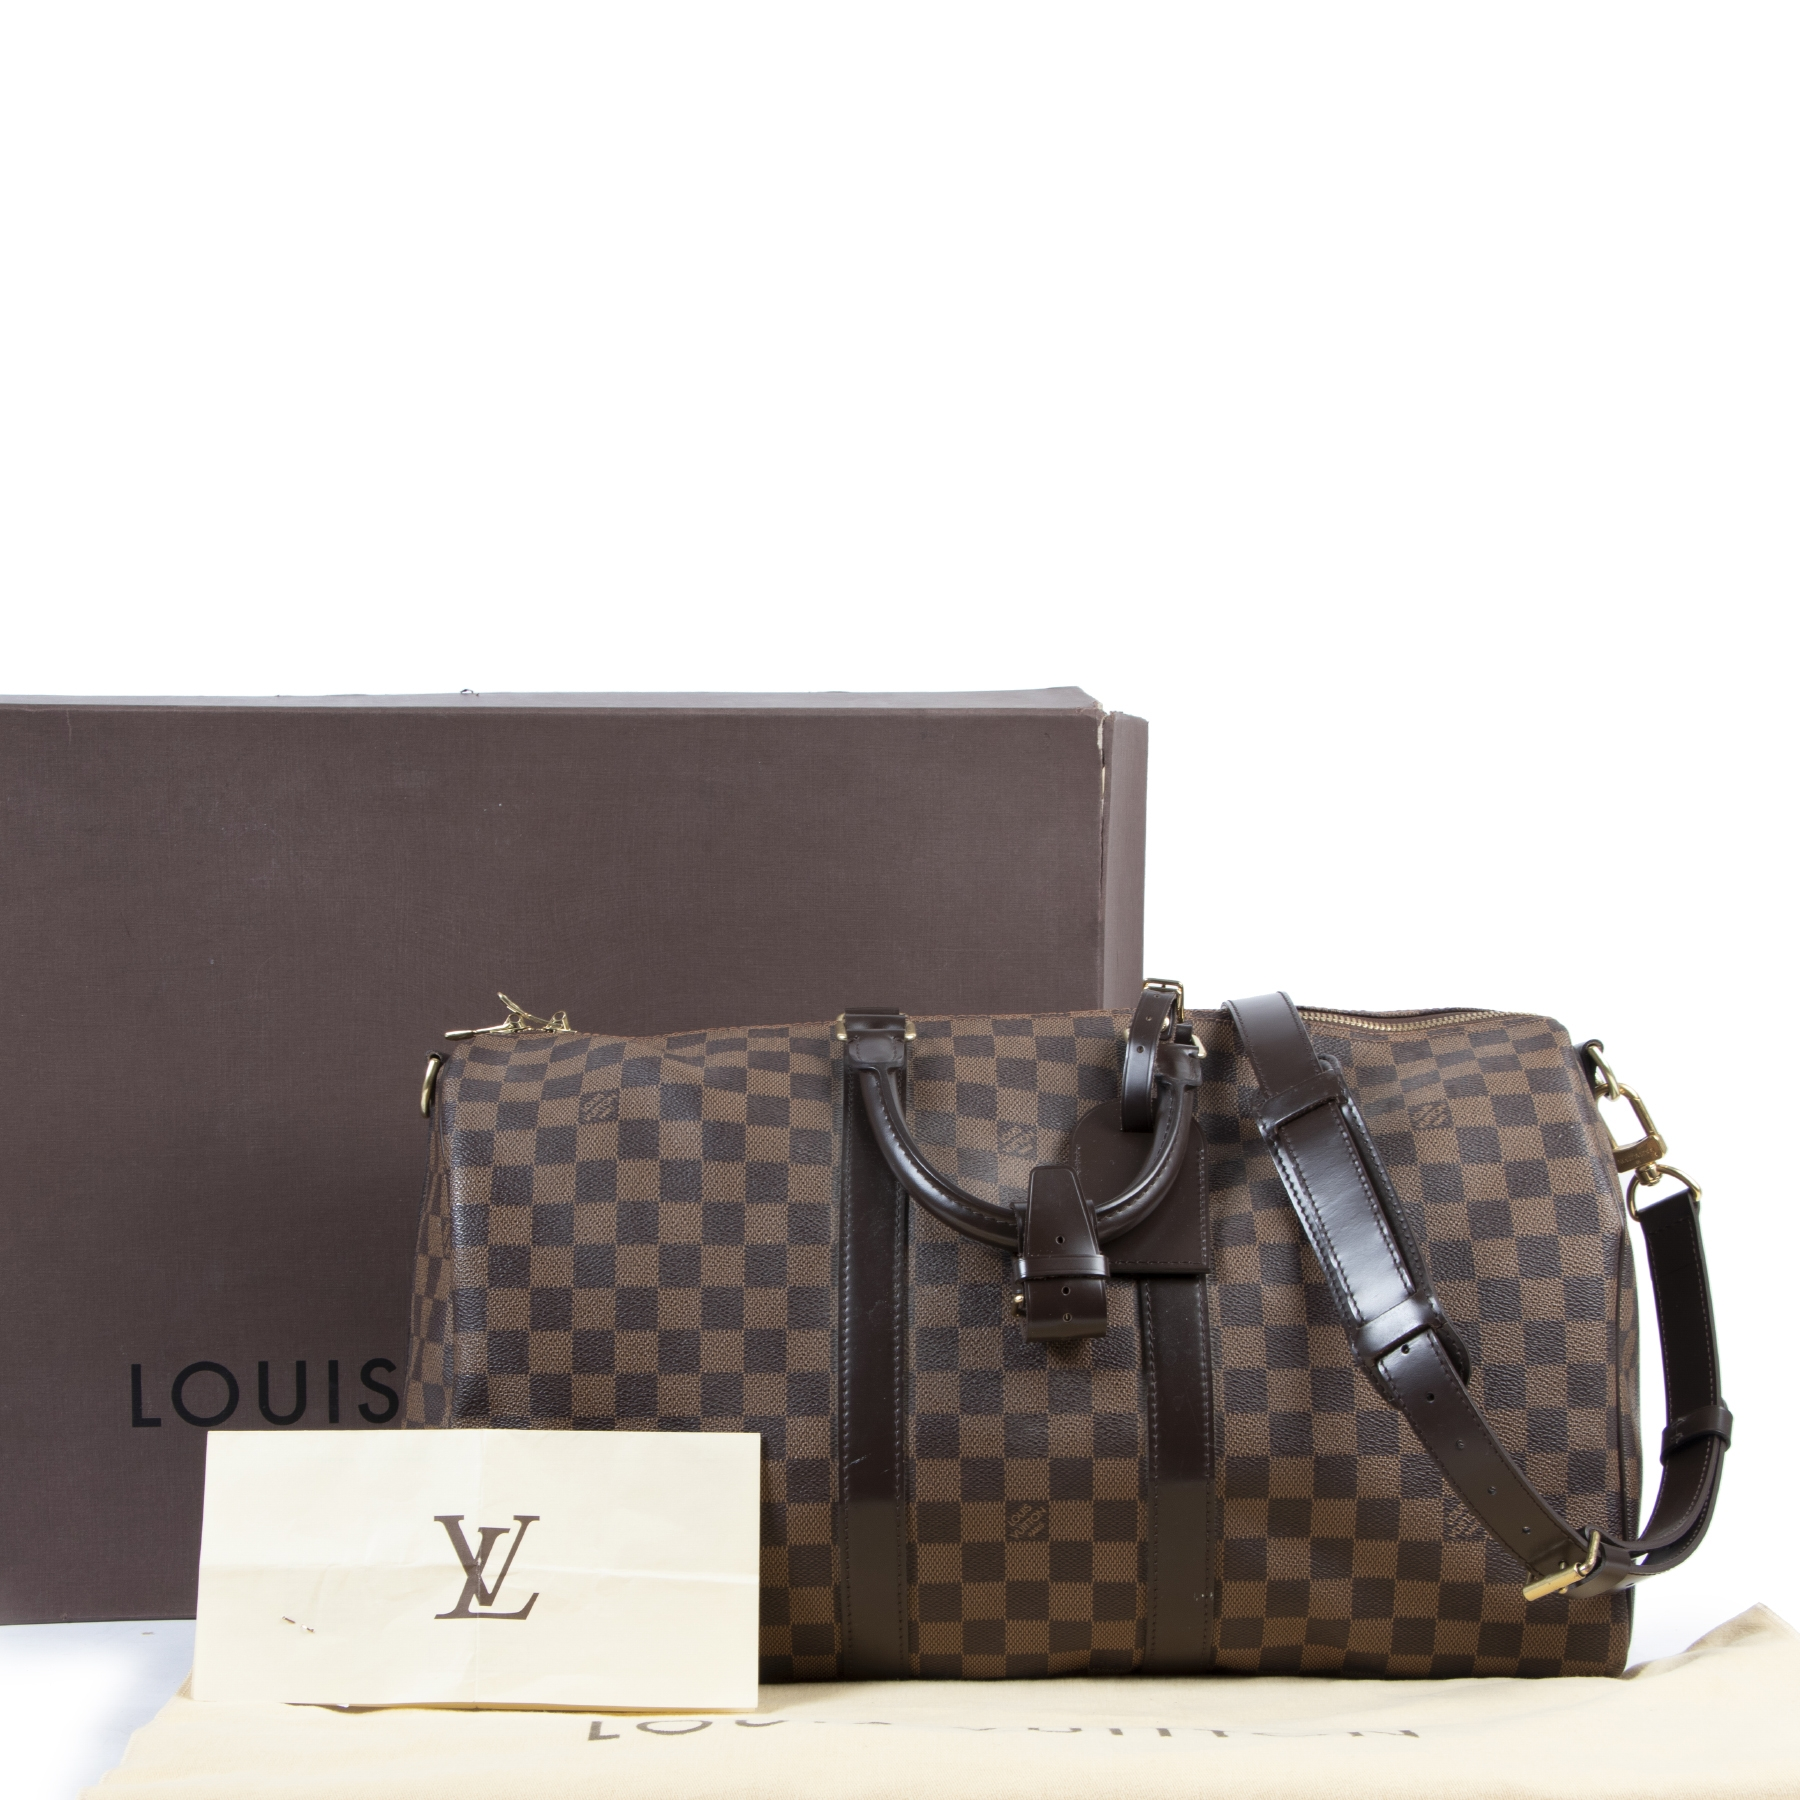 Authentic second-hand vintage Louis Vuitton Damier Ebene Keepall 45 Bag buy online webshop LabelLOV